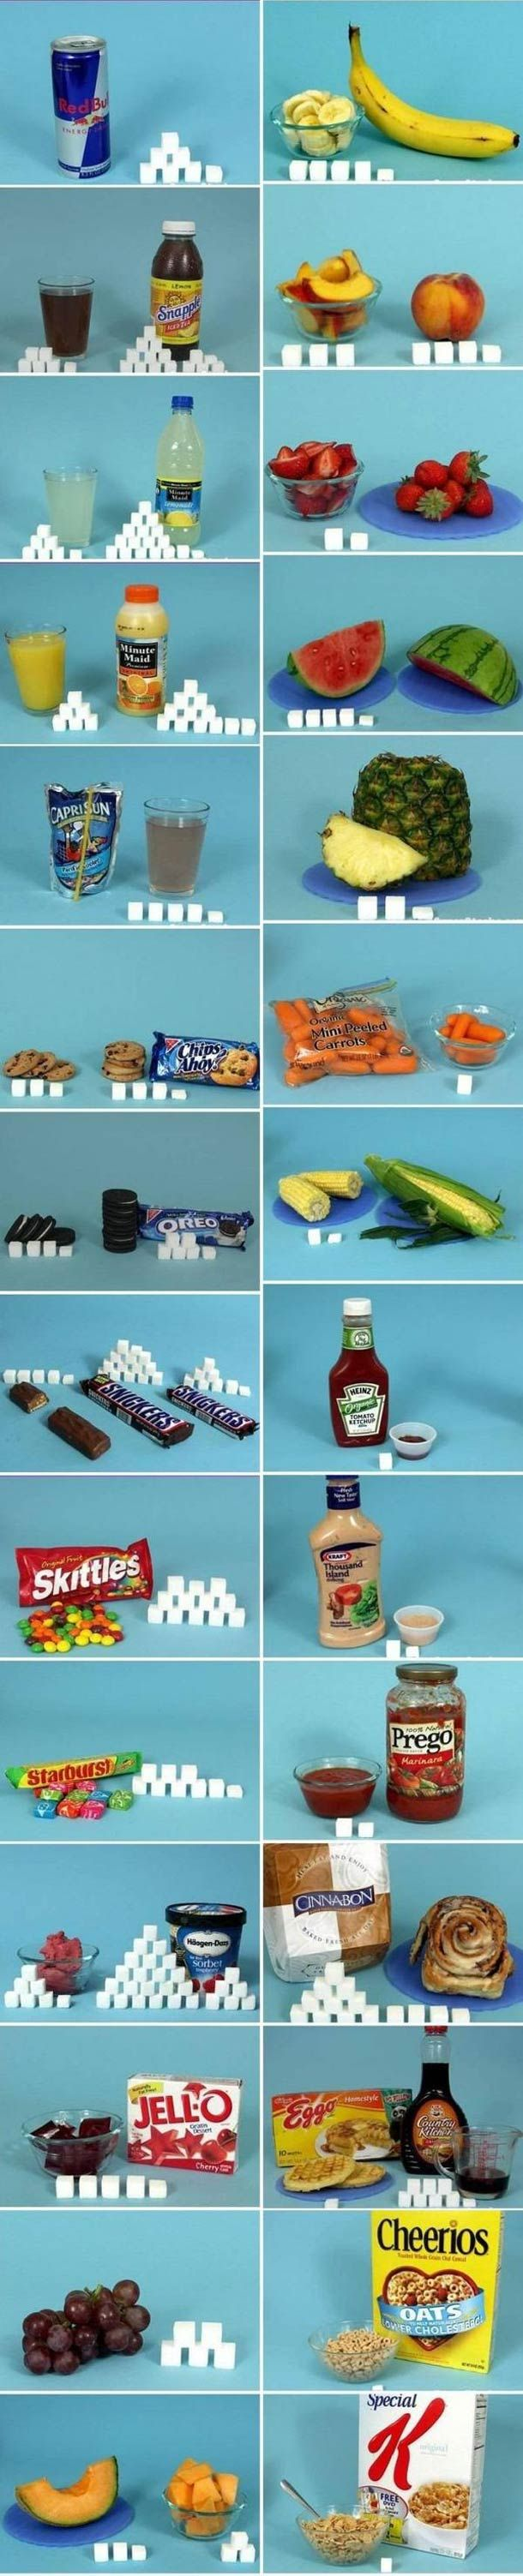 Amount of sugar in foods expressed in sugar cubes. everyone realizes some of these foods contain Natural Sugars while others are full of Added Sugars right? The sugar in fruit is not bad for you, and bc it is paired with fiber it has added health benefits. so keep on eating fruit and no sugar added juices.